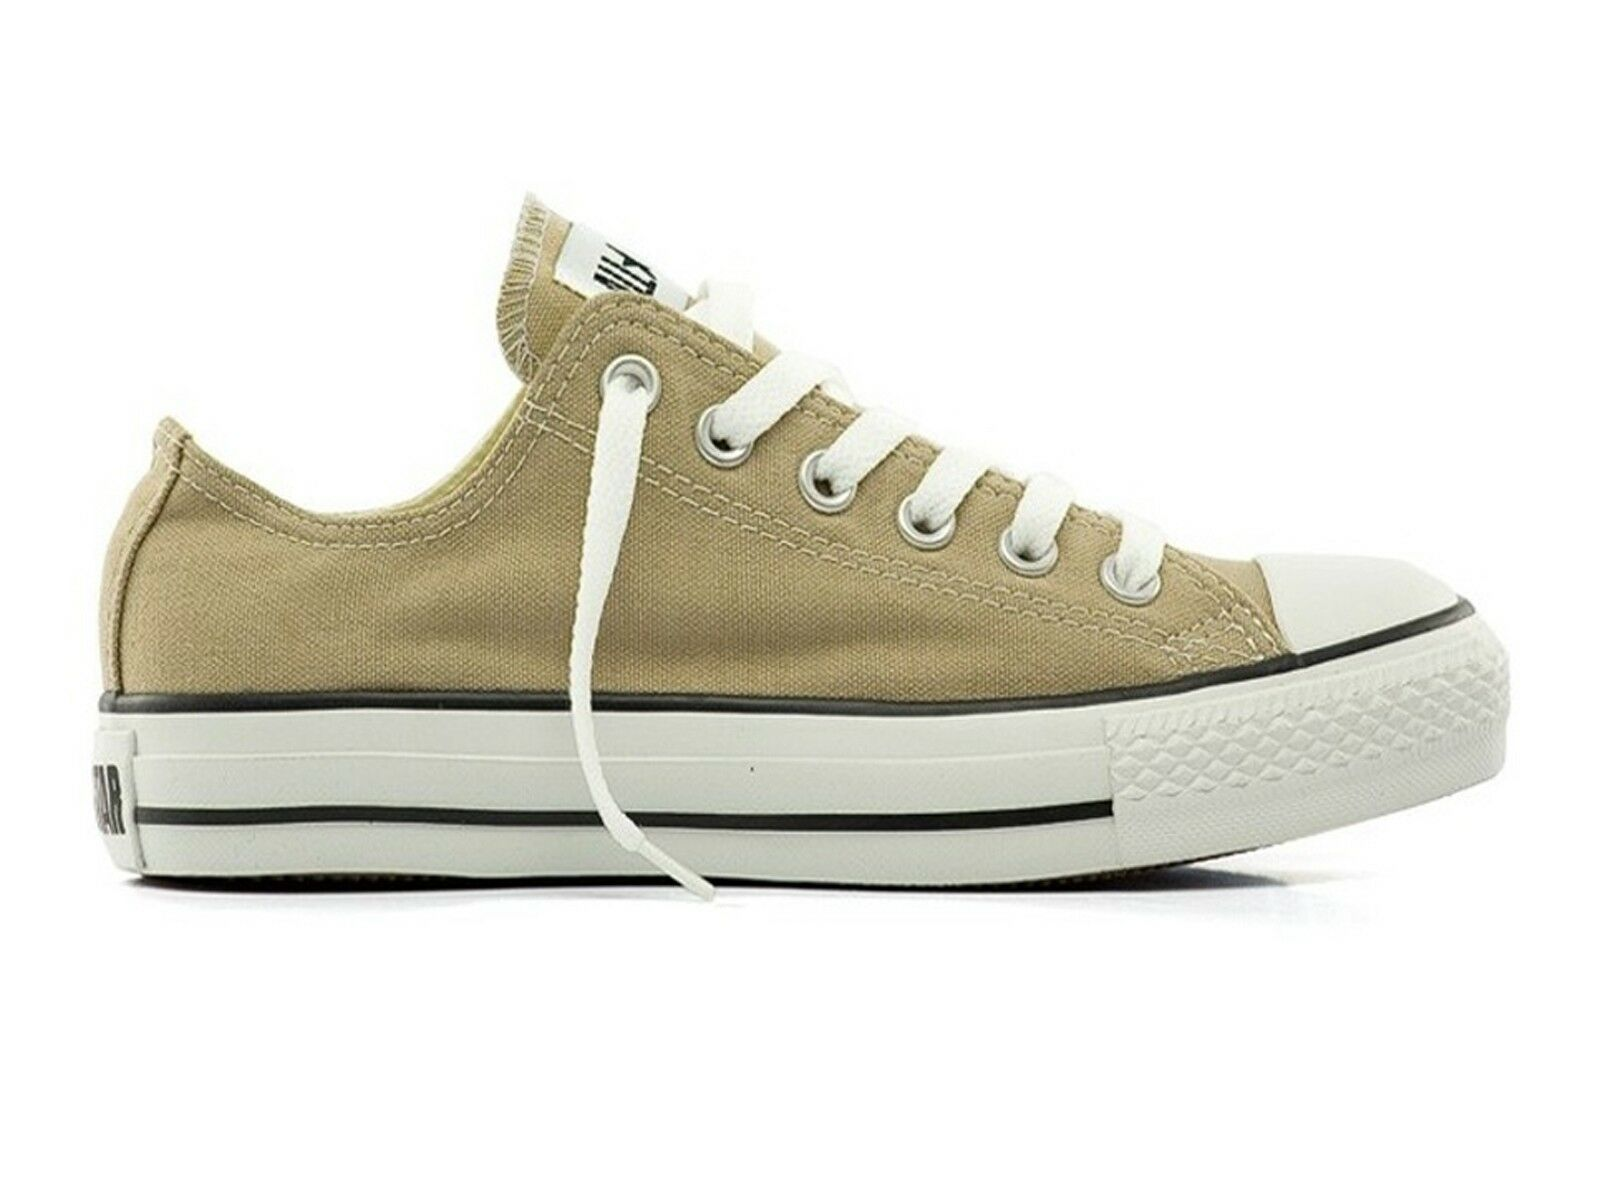 shoes UNISEX CONVERSE  1G350 ALL STAR OX CANVAS SIMPLY TAUPE